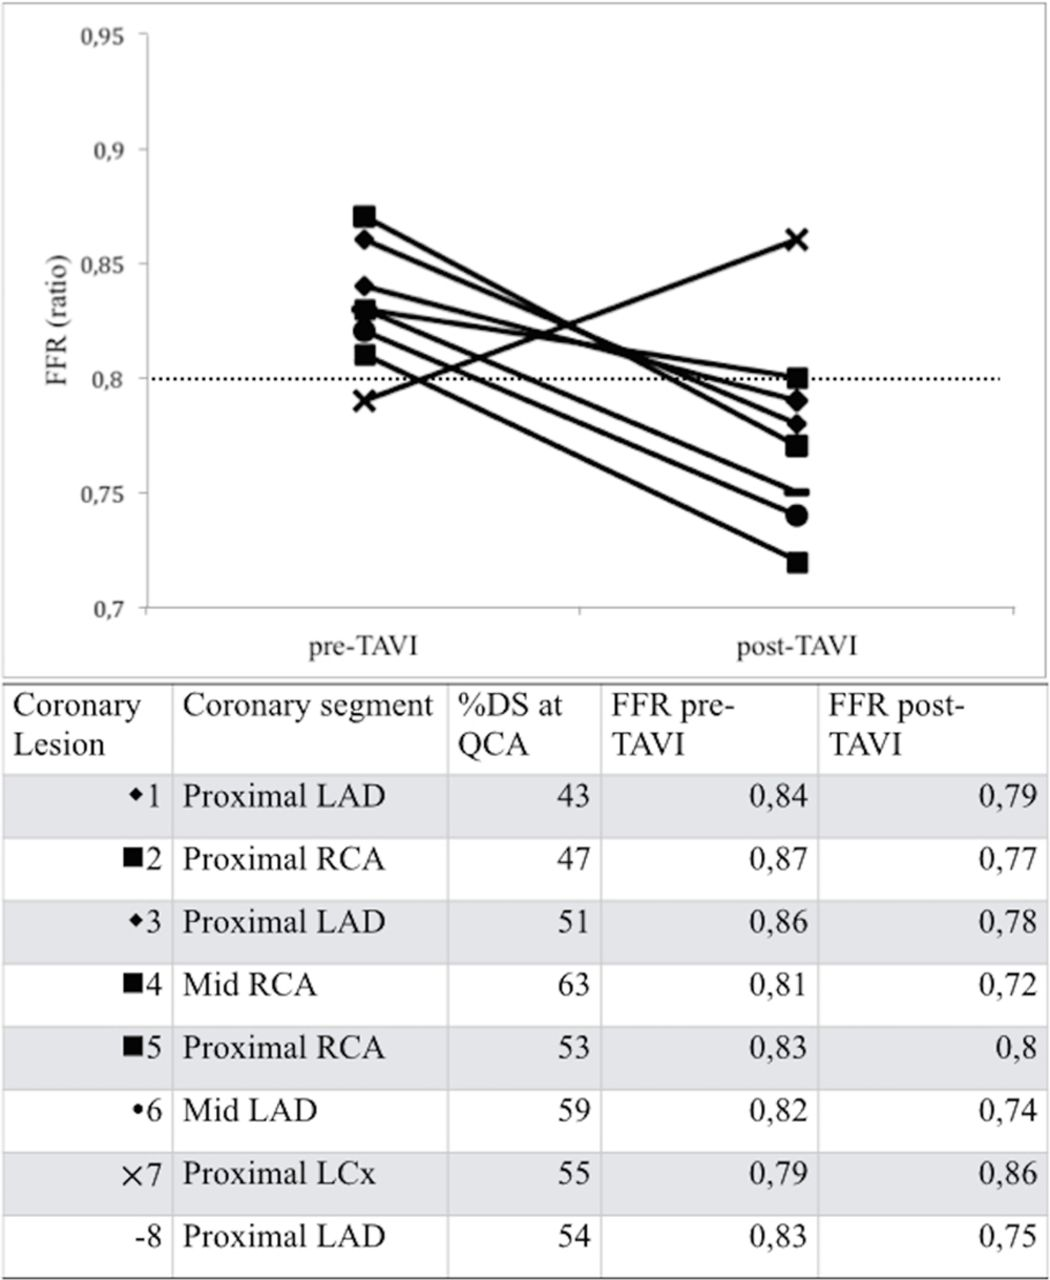 Functional Assessment of Coronary Artery Disease in Patients